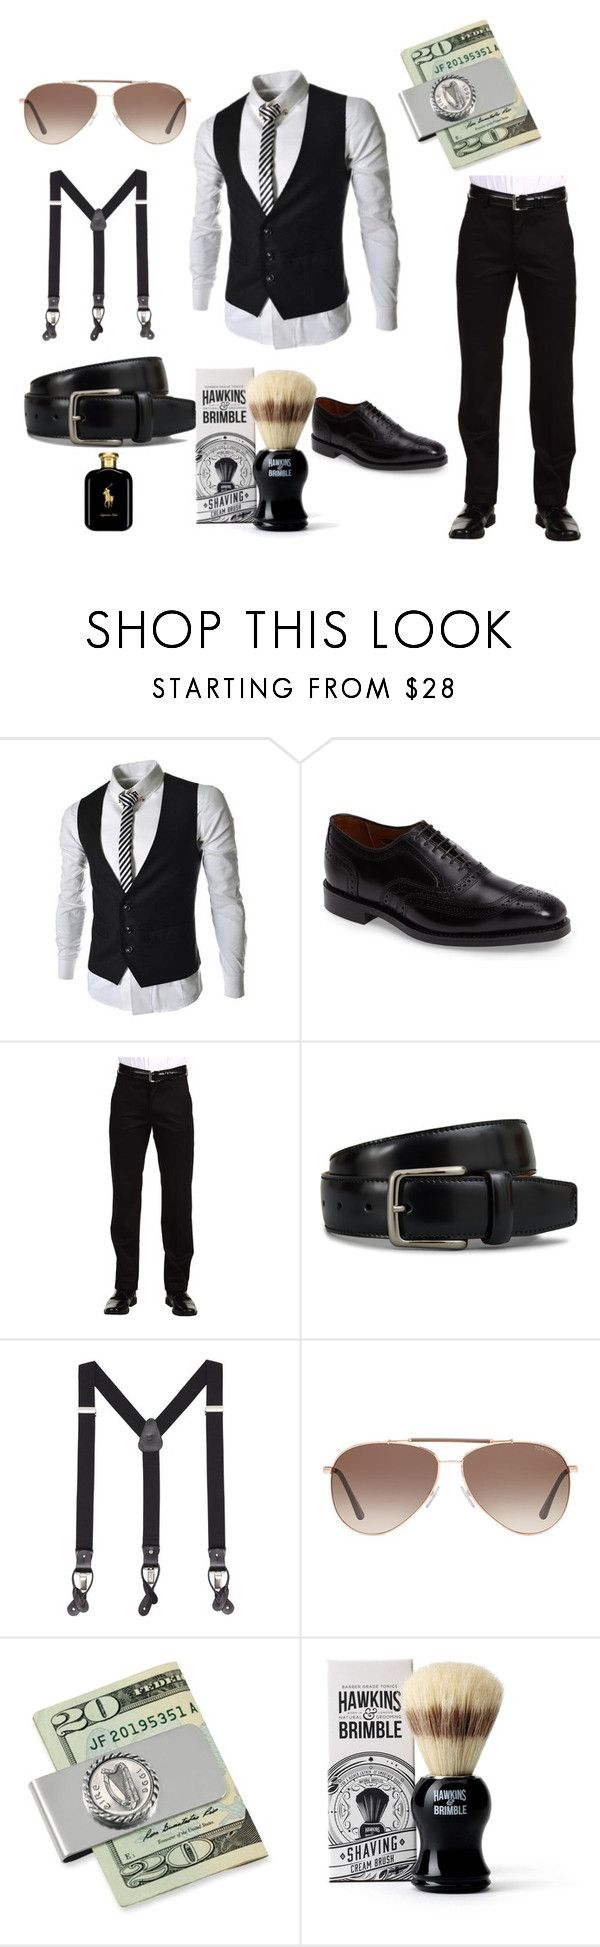 """Something Delicious"" by marguerite-dillworth on Polyvore featuring Allen Edmonds, Dockers, Tod's, MANGO MAN, Tom Ford, American Coin Treasures, Hawkins & Brimble, Polo Ralph Lauren, men's fashion and menswear"